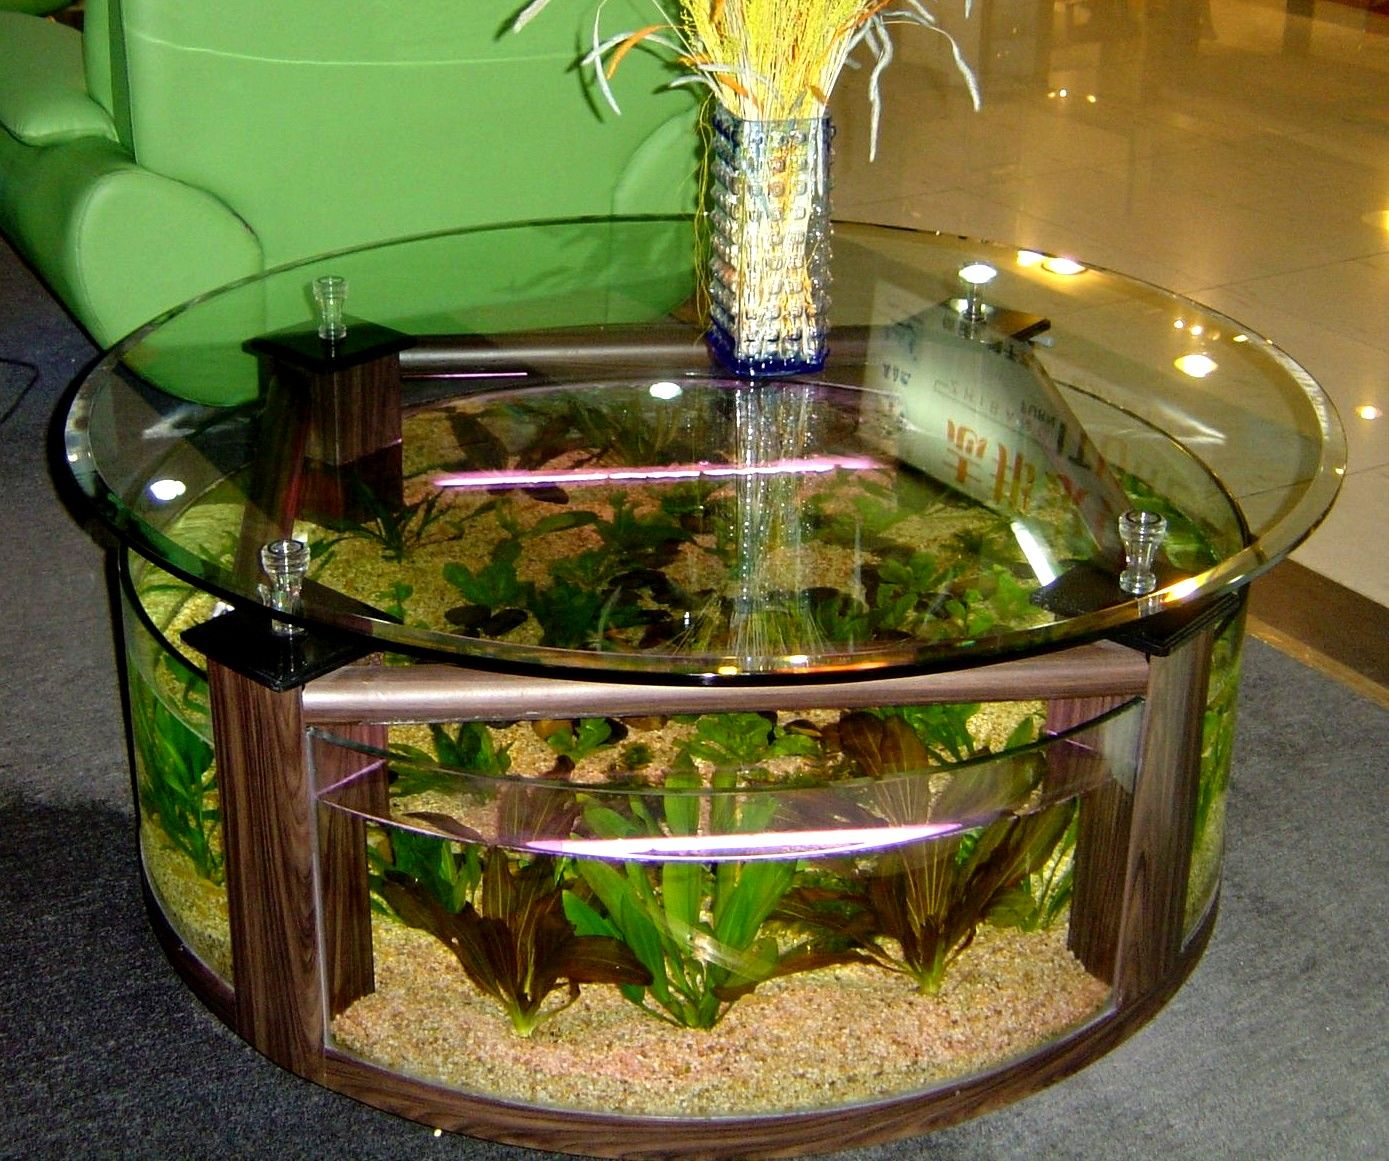 Fish tank living room table - Home Coffee Table Aquarium Design Ideas2 Aquarium Design Ideas Aquarium